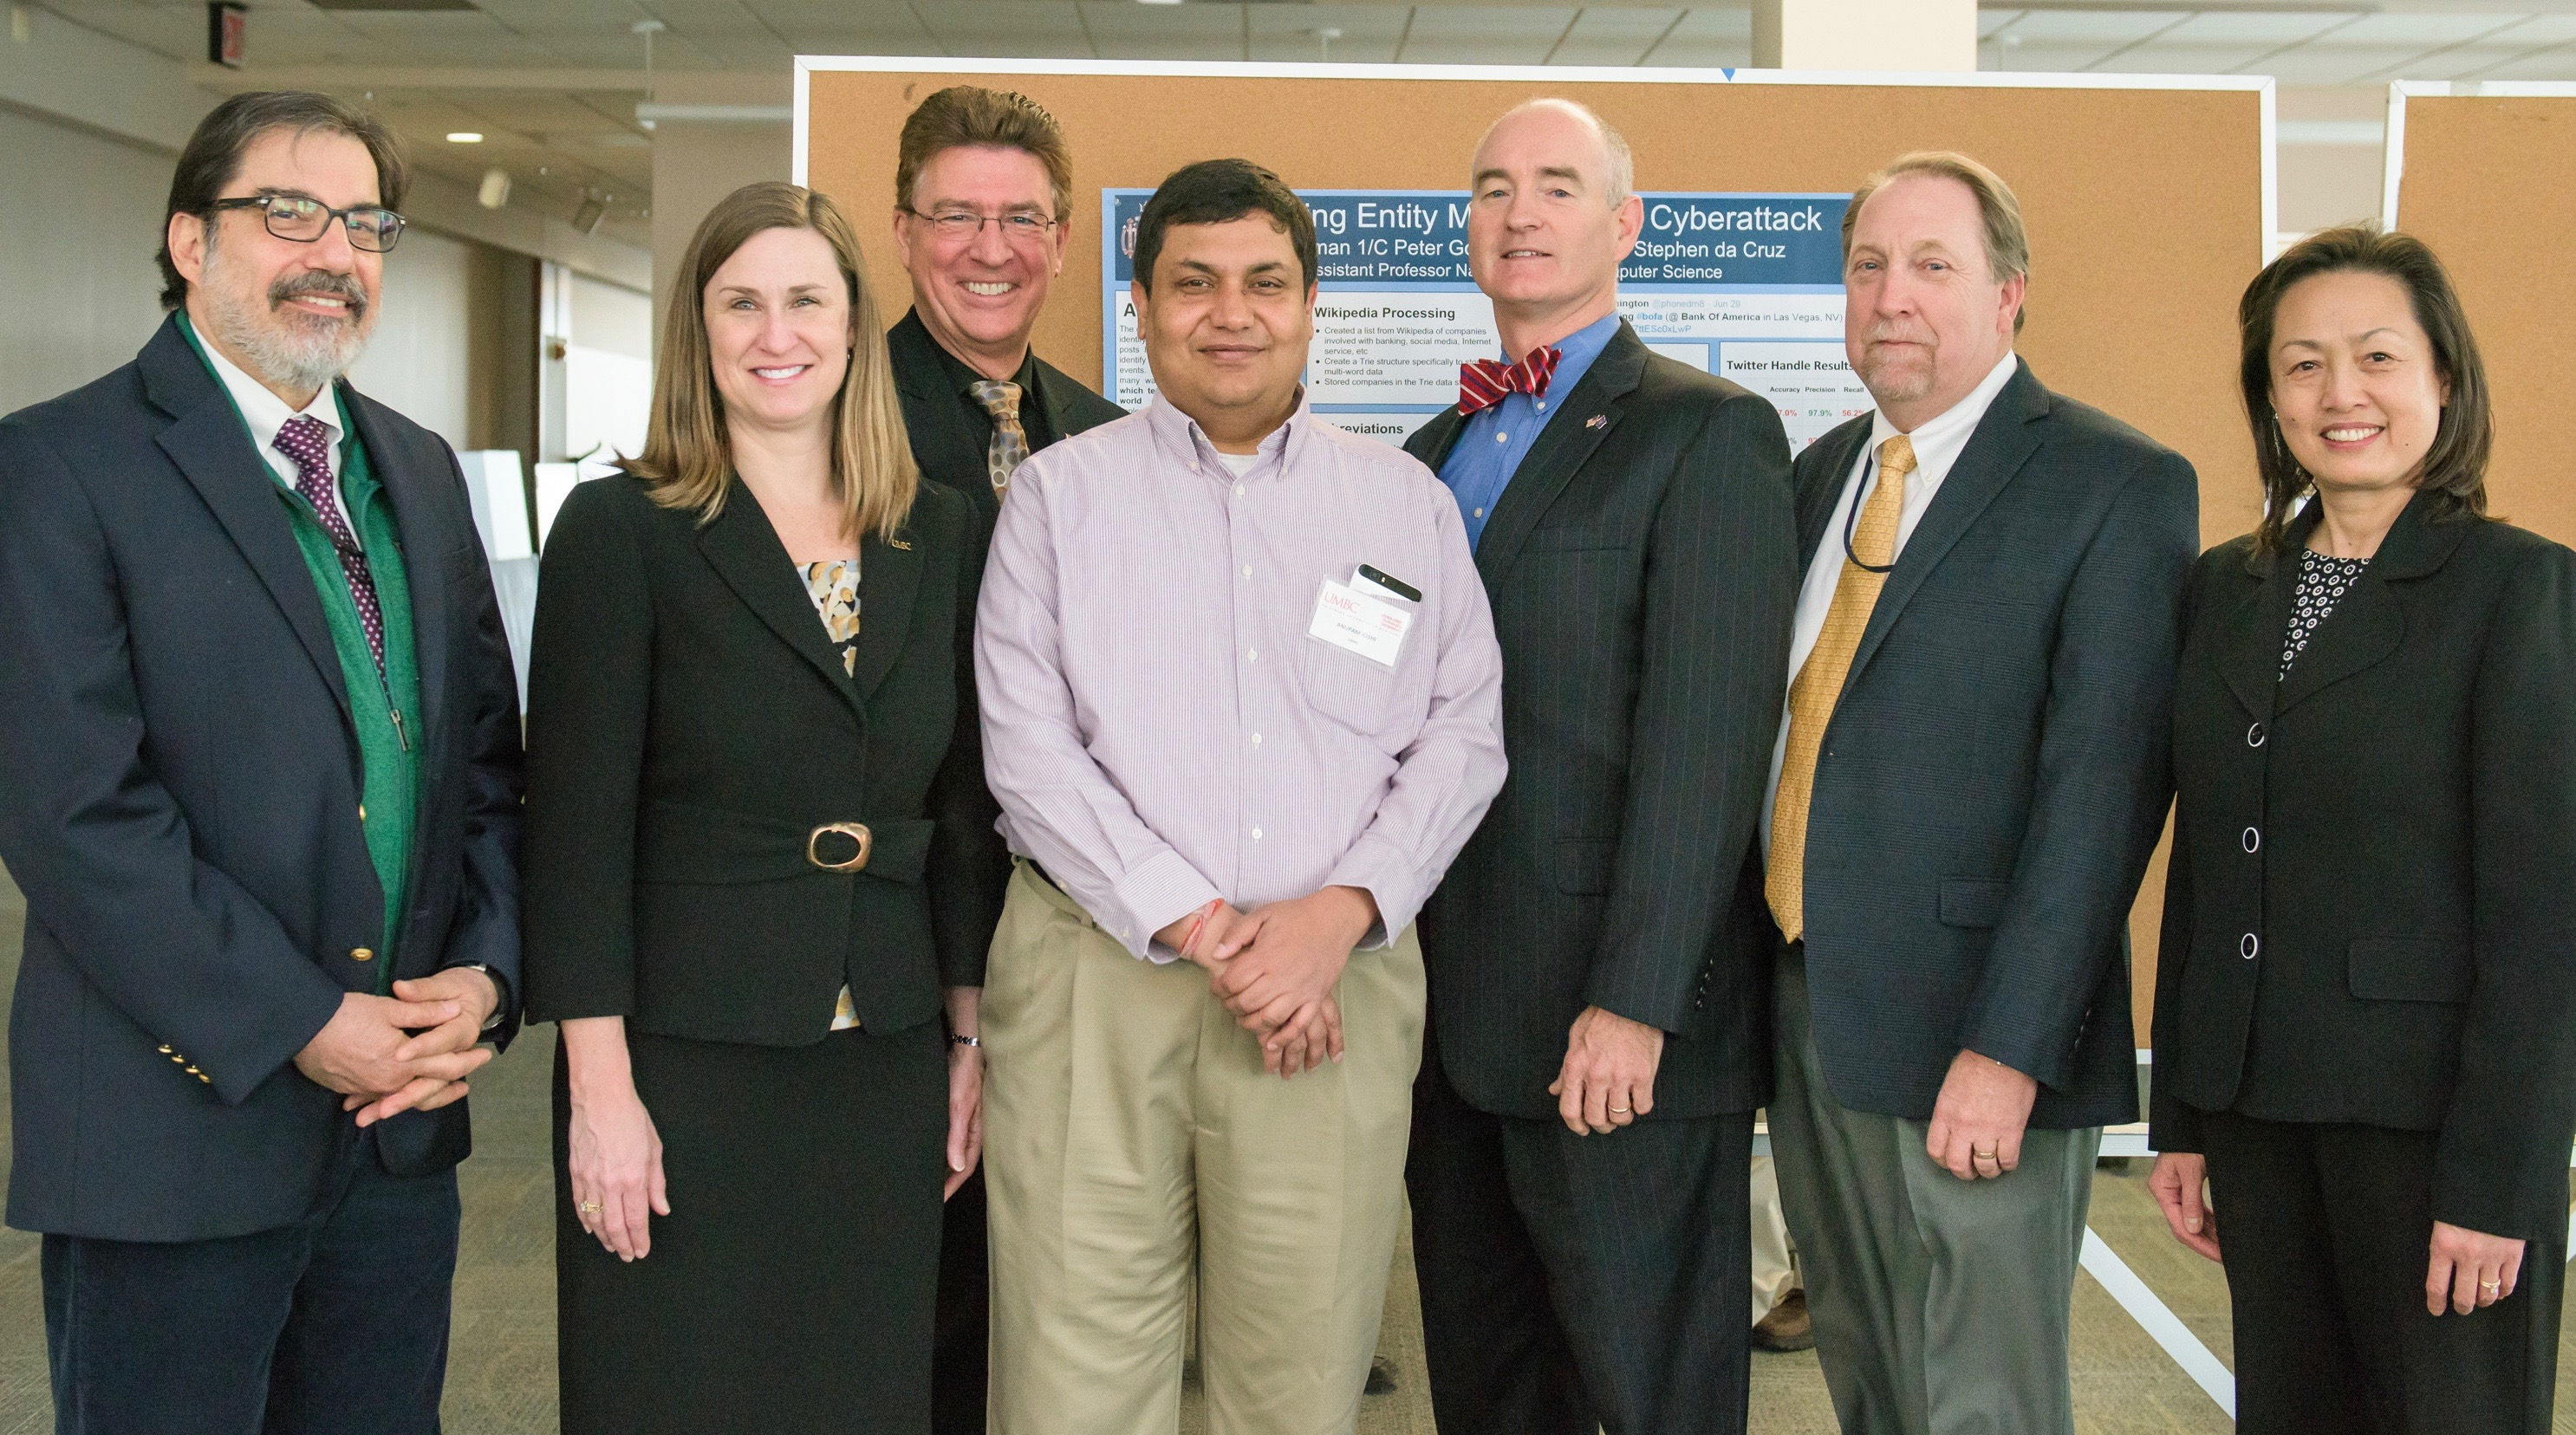 UMBC-USNA teams share progress on cybersecurity research at partnership symposium